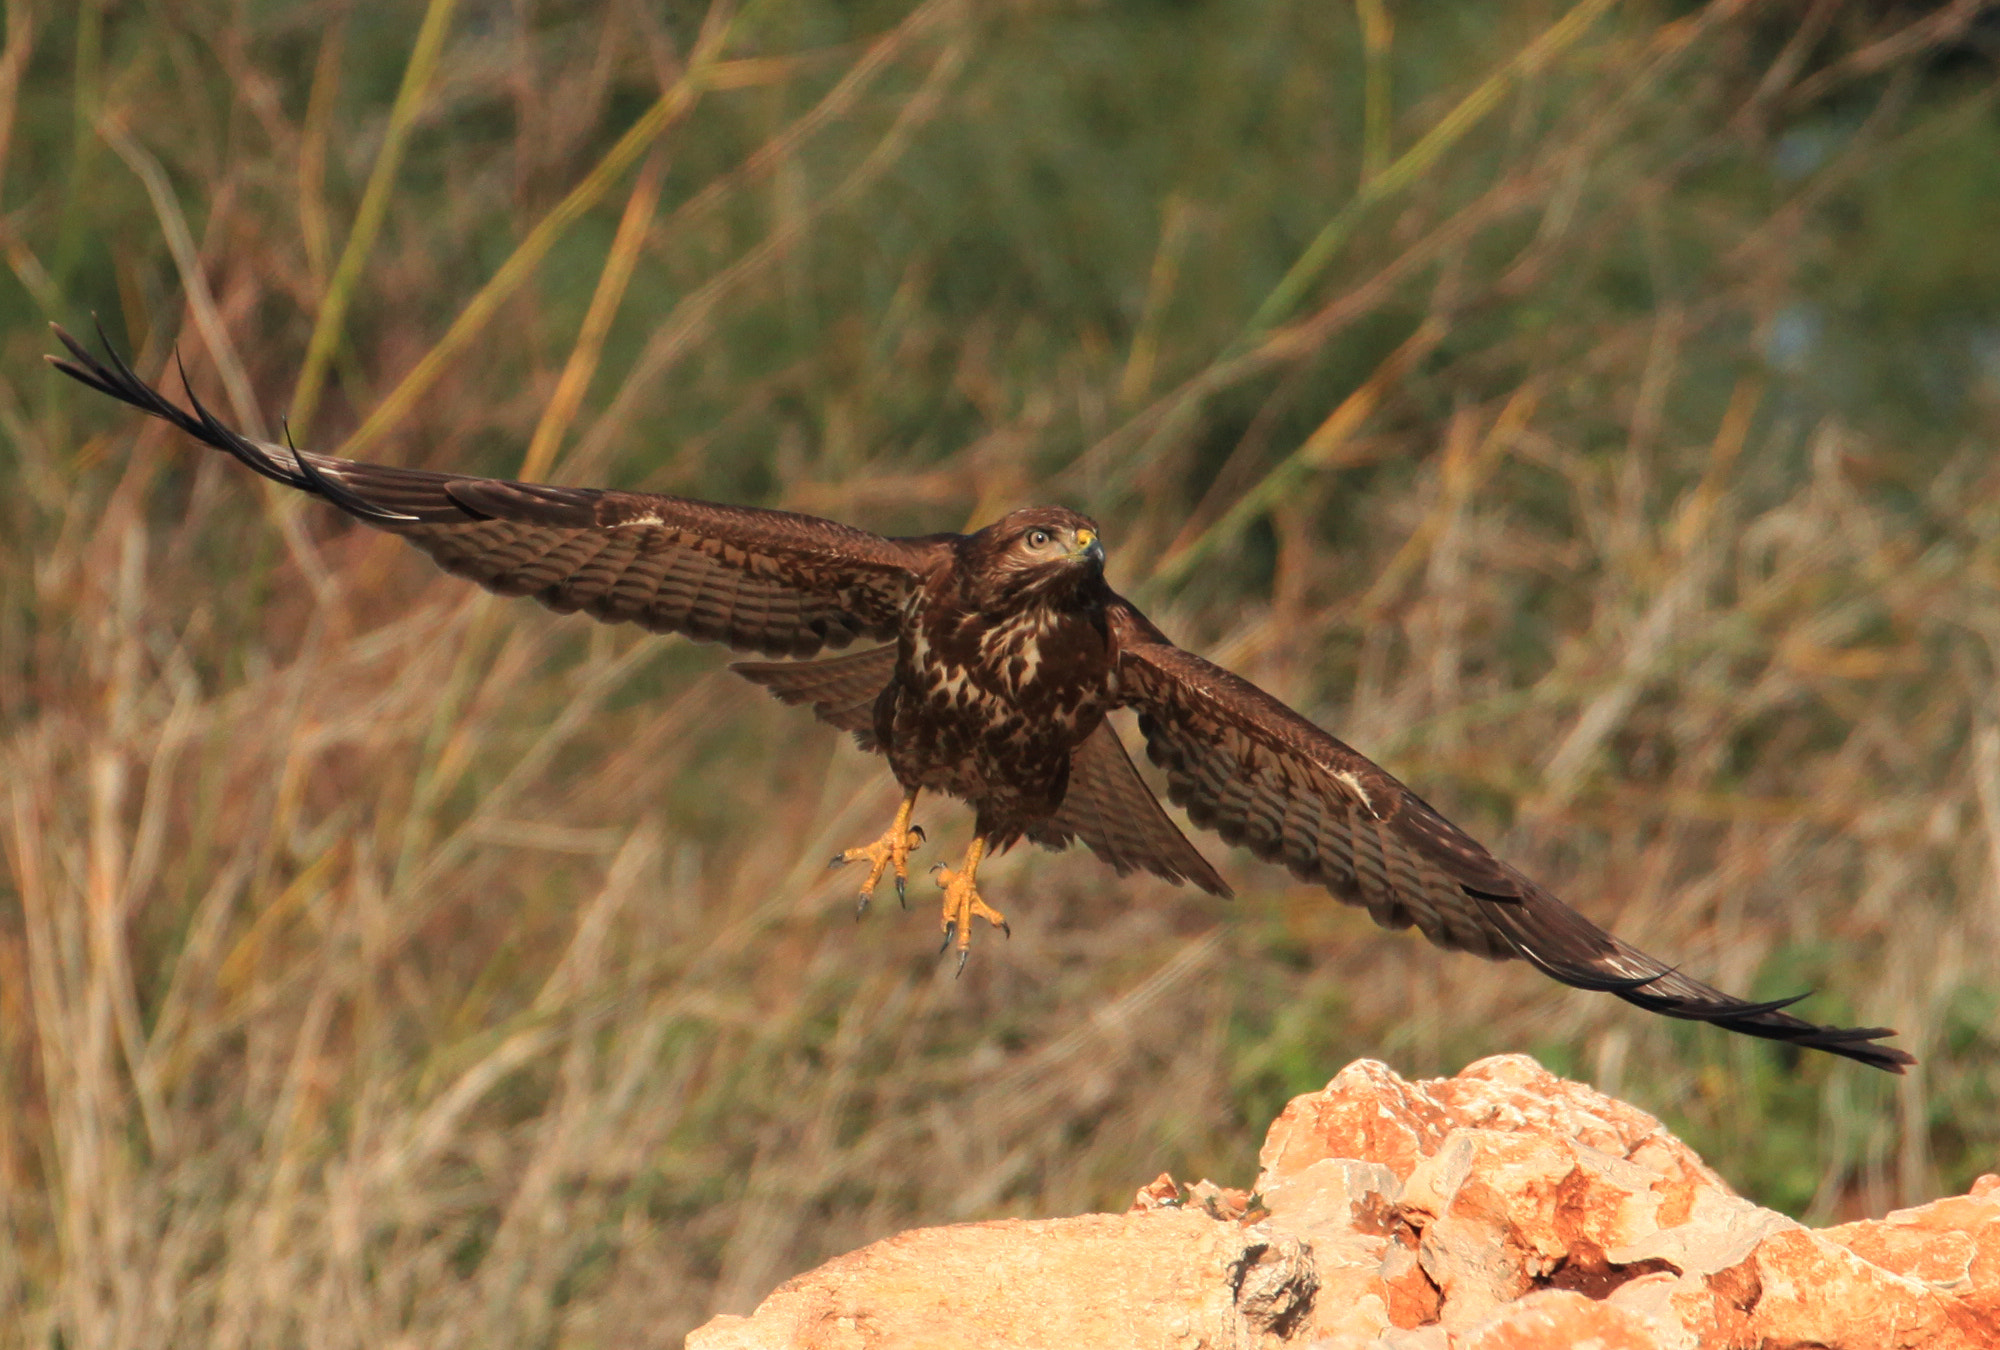 Photograph Buzzard flight by Gaia Sherf on 500px